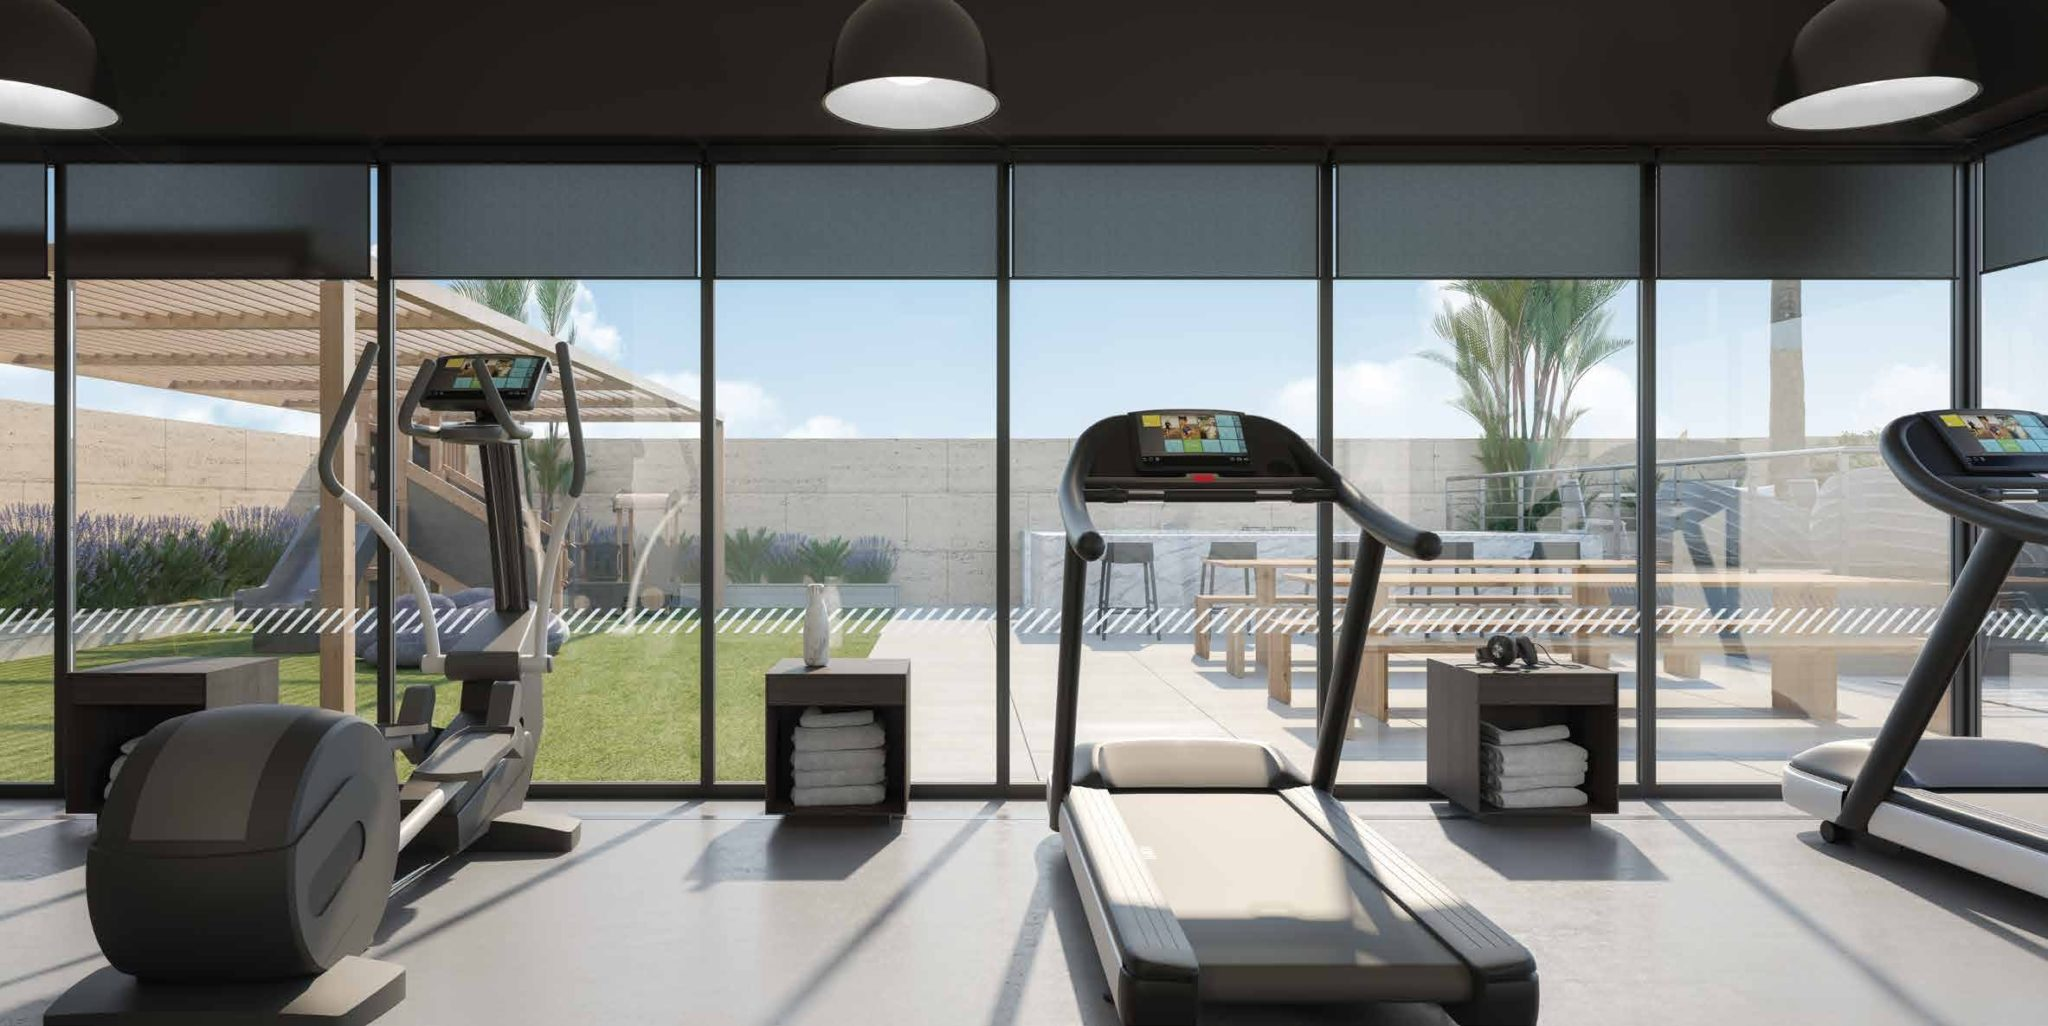 DESIGNED TO MOTIVATE AND REFRESH YOUR BODY, MIND AND SOUL.